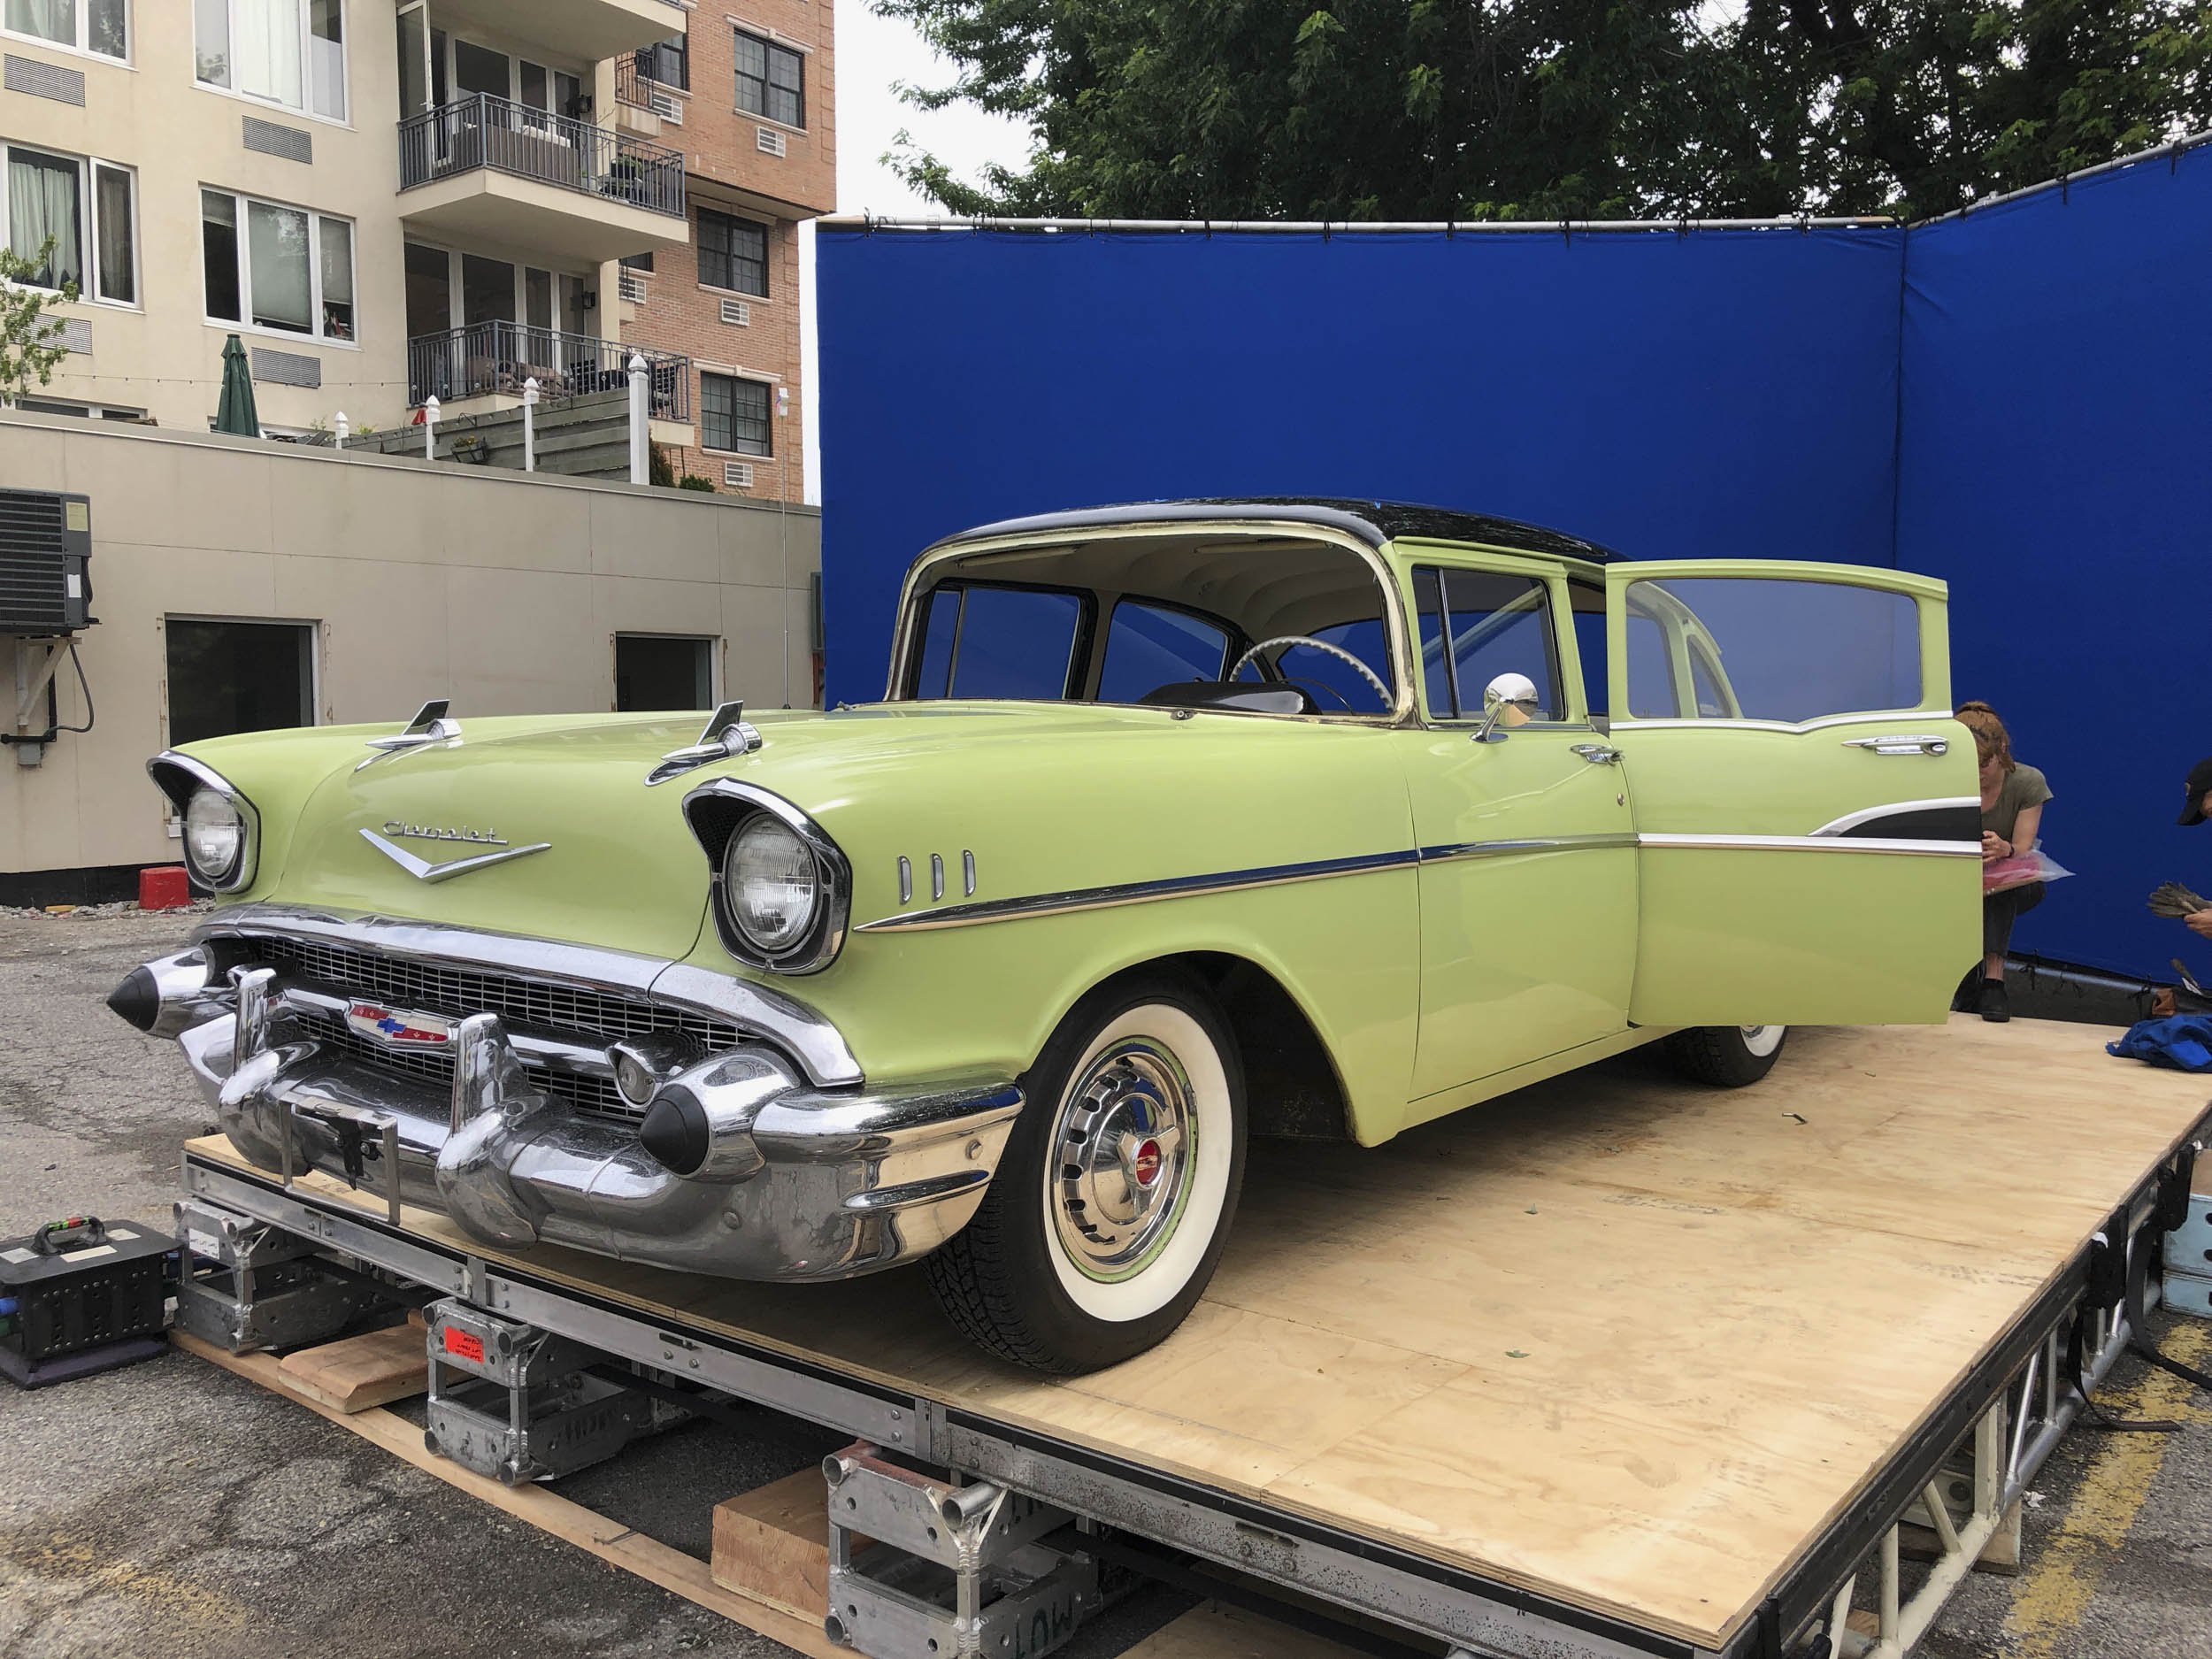 1957 Chevrolet 210, Queens, NY, windscreen removed for blue screen work.